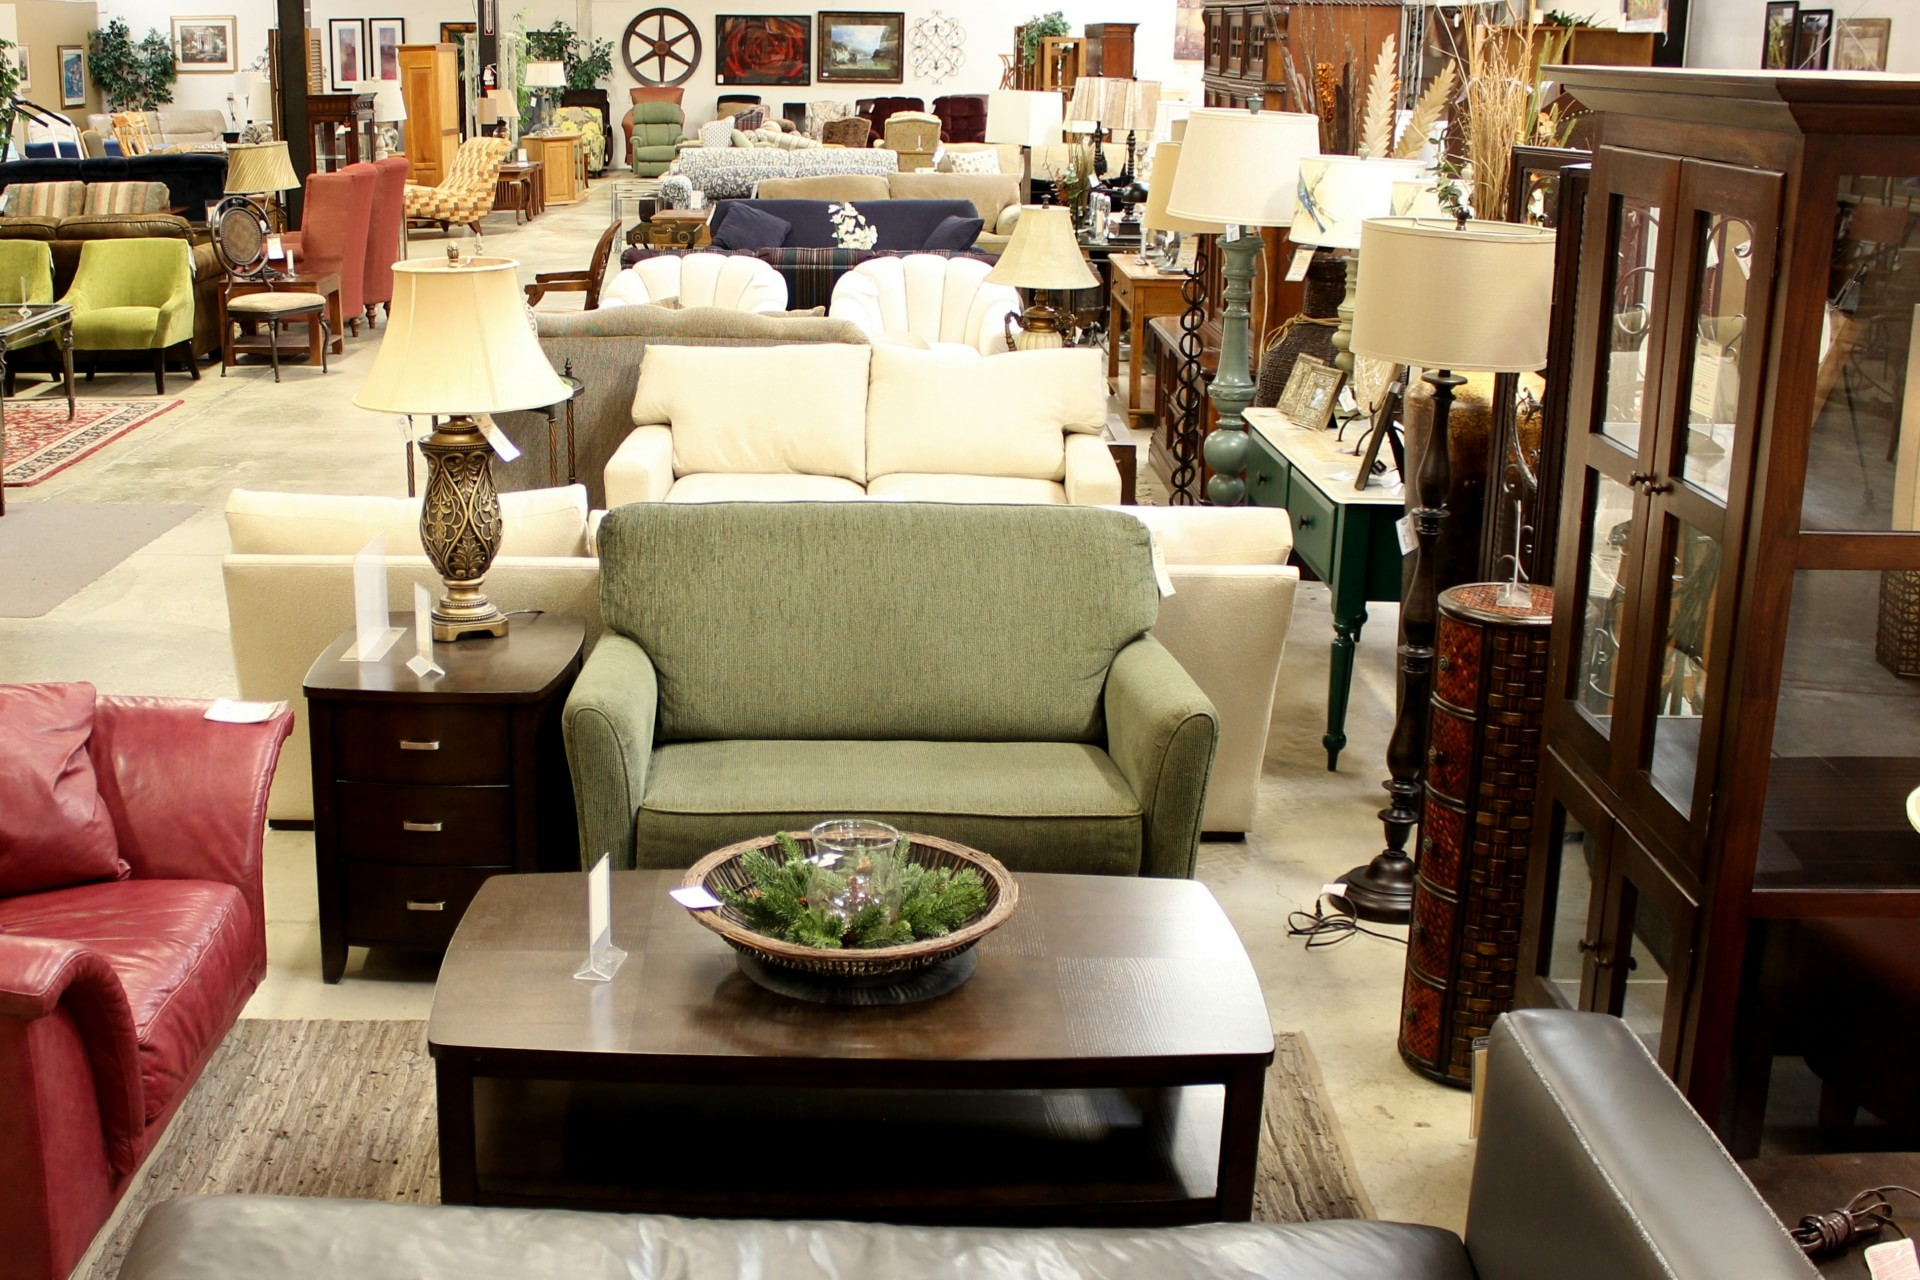 Upscale Consignment Furniture & Decor fourth image